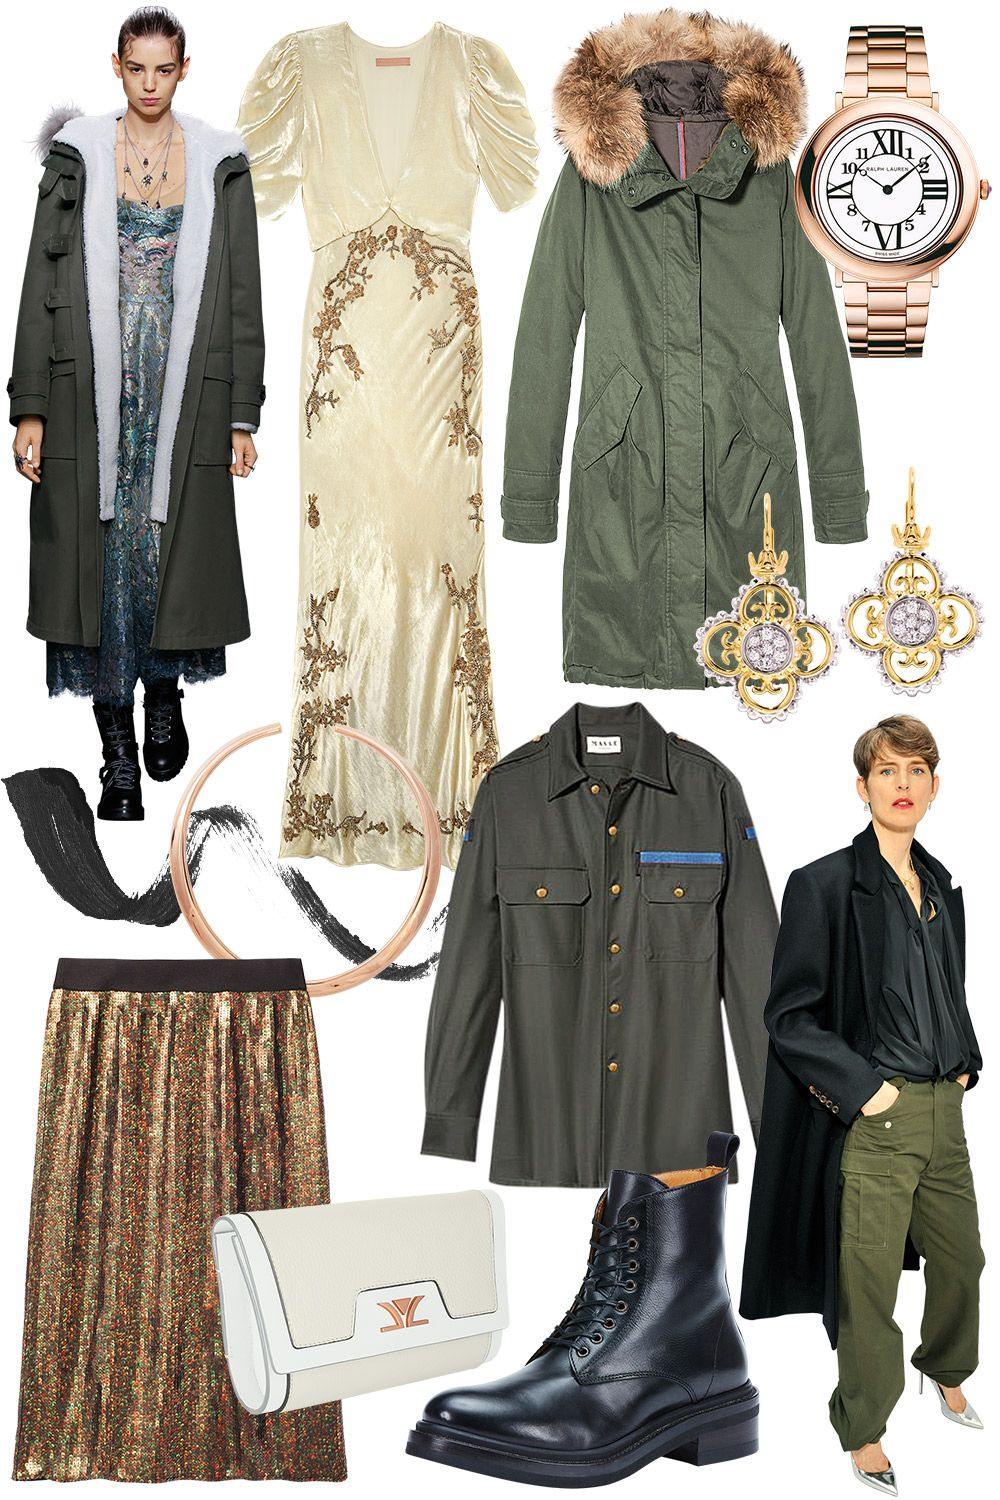 "<p><strong data-redactor-tag=""strong"" data-verified=""redactor"">STYLIST'S TIP: </strong>An army green jacket toughens up a girly dress.</p><p><em data-redactor-tag=""em"" data-verified=""redactor""><strong data-redactor-tag=""strong"" data-verified=""redactor""><br></strong></em></p><p><em data-redactor-tag=""em"" data-verified=""redactor""><span class=""redactor-invisible-space"" data-verified=""redactor"" data-redactor-tag=""span"" data-redactor-class=""redactor-invisible-space""><strong data-redactor-tag=""strong"" data-verified=""redactor""></strong></span></em><em data-redactor-tag=""em"" data-verified=""redactor""><strong data-redactor-tag=""strong"" data-verified=""redactor"">Brock Collection</strong> dress, $4,290, <a href=""http://www.brocknewyork.com/"" target=""_blank"">brocknewyork.com</a>; <strong data-redactor-tag=""strong"" data-verified=""redactor"">Moncler</strong> jacket, $1,975, <a href=""http://moncler.com"" target=""_blank"">moncler.com</a>; <strong data-redactor-tag=""strong"" data-verified=""redactor"">Ralph Lauren</strong> watch, $21,800, <a href=""http://www.ralphlauren.com/home/index.jsp?ab=Geo_iUS_rUS_dUS"" target=""_blank"">ralphlauren.com</a>; <strong data-redactor-tag=""strong"" data-verified=""redactor"">Lancôme</strong> Grandiôse Liner in Matte Noir, $32, <a href=""http://www.lancome-usa.com/"" target=""_blank"">lancome-usa.com</a>; <strong data-redactor-tag=""strong"" data-verified=""redactor"">Sidney Garber</strong> necklace, $18,200, <a href=""http://sidneygarber.com/"" target=""_blank"">sidneygarber.com</a>; <strong data-redactor-tag=""strong"" data-verified=""redactor"">Maison Mayle</strong> shirt, $795, <a href=""http://maisonmayle.com/"" target=""_blank"">maisonmayle.com</a>; <strong data-redactor-tag=""strong"" data-verified=""redactor"">Vahan</strong> earrings, $2,625, <a href=""http://www.vahanjewelry.com/"" target=""_blank"">vahanjewelry.com</a>; <strong data-redactor-tag=""strong"" data-verified=""redactor"">Le Vian </strong>clutch, $799, <a href=""http://levian.com/brandedbylevian/"" target=""_blank"">levian.com</a>; <strong data-redactor-tag=""strong"" data-verified=""redactor"">The Frye Company </strong>boot, $528, <a href=""http://www.thefryecompany.com/"" target=""_blank"">thefryecompany.com</a></em><span class=""redactor-invisible-space""><em data-redactor-tag=""em"" data-verified=""redactor"">.</em></span><span class=""redactor-invisible-space"" data-verified=""redactor"" data-redactor-tag=""span"" data-redactor-class=""redactor-invisible-space""><em data-redactor-tag=""em"" data-verified=""redactor""></em></span></p>"